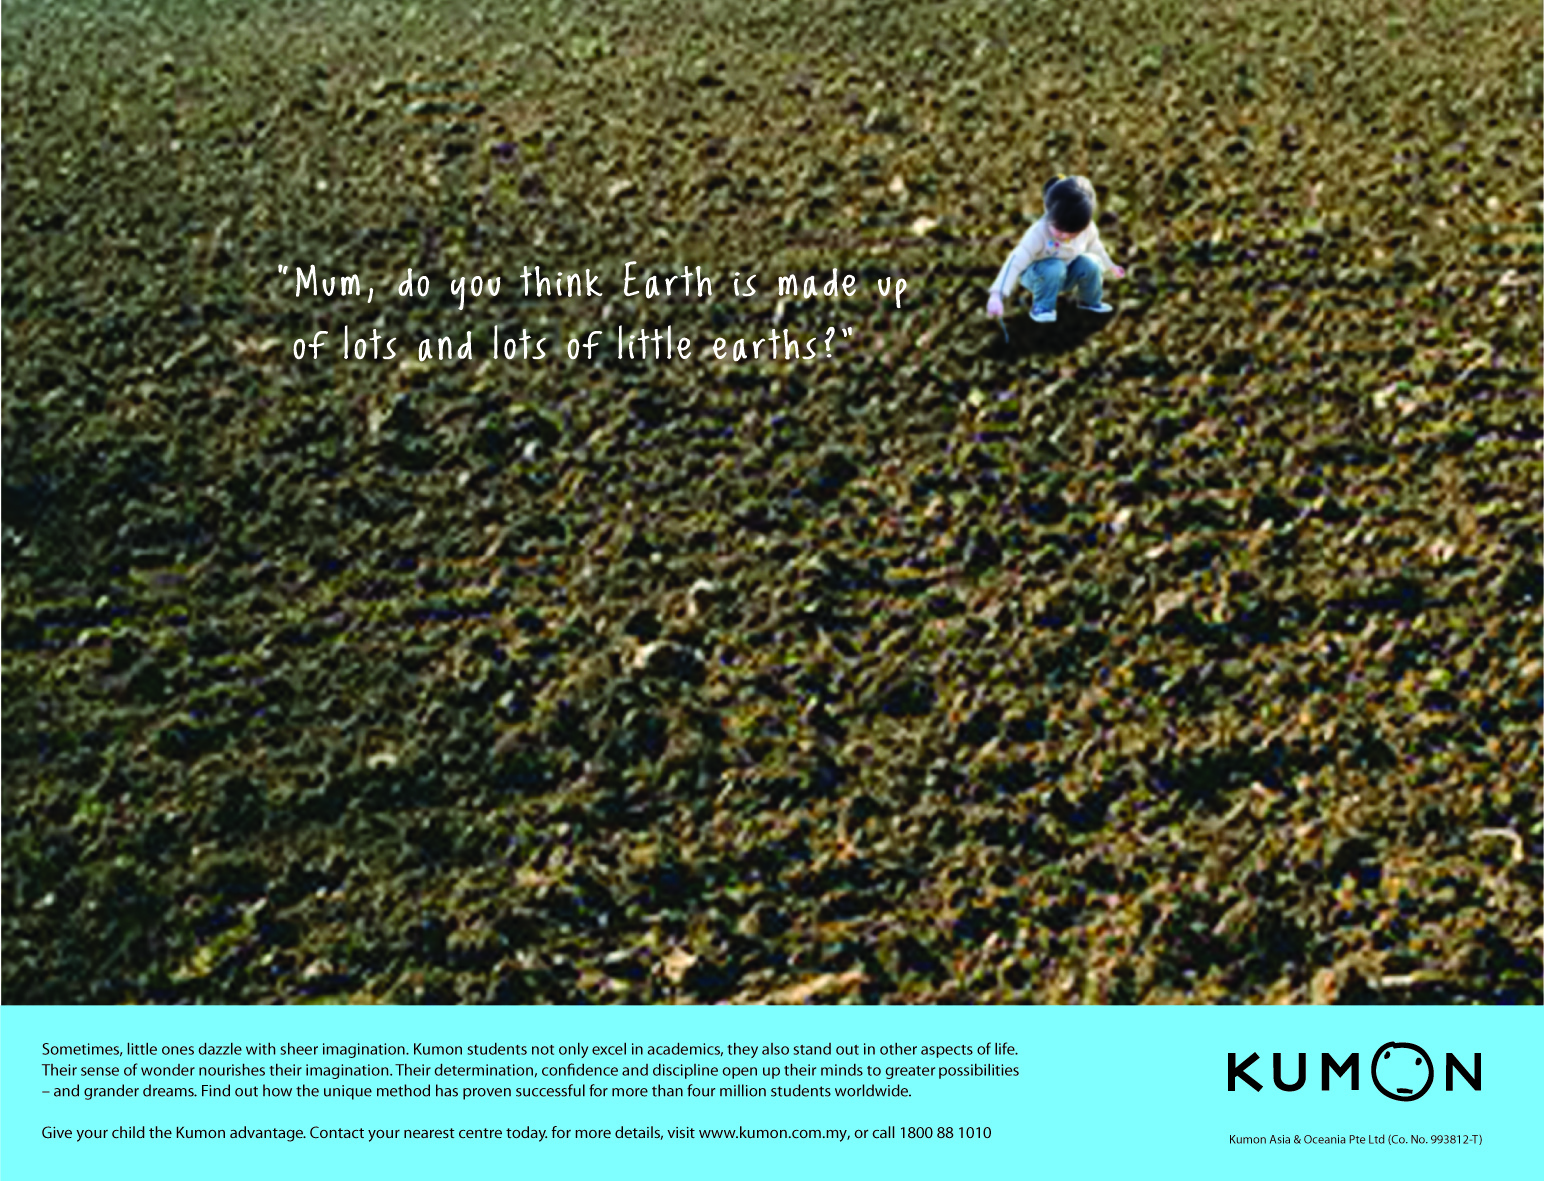 Kumon Thematic Print Advertisement - Earth